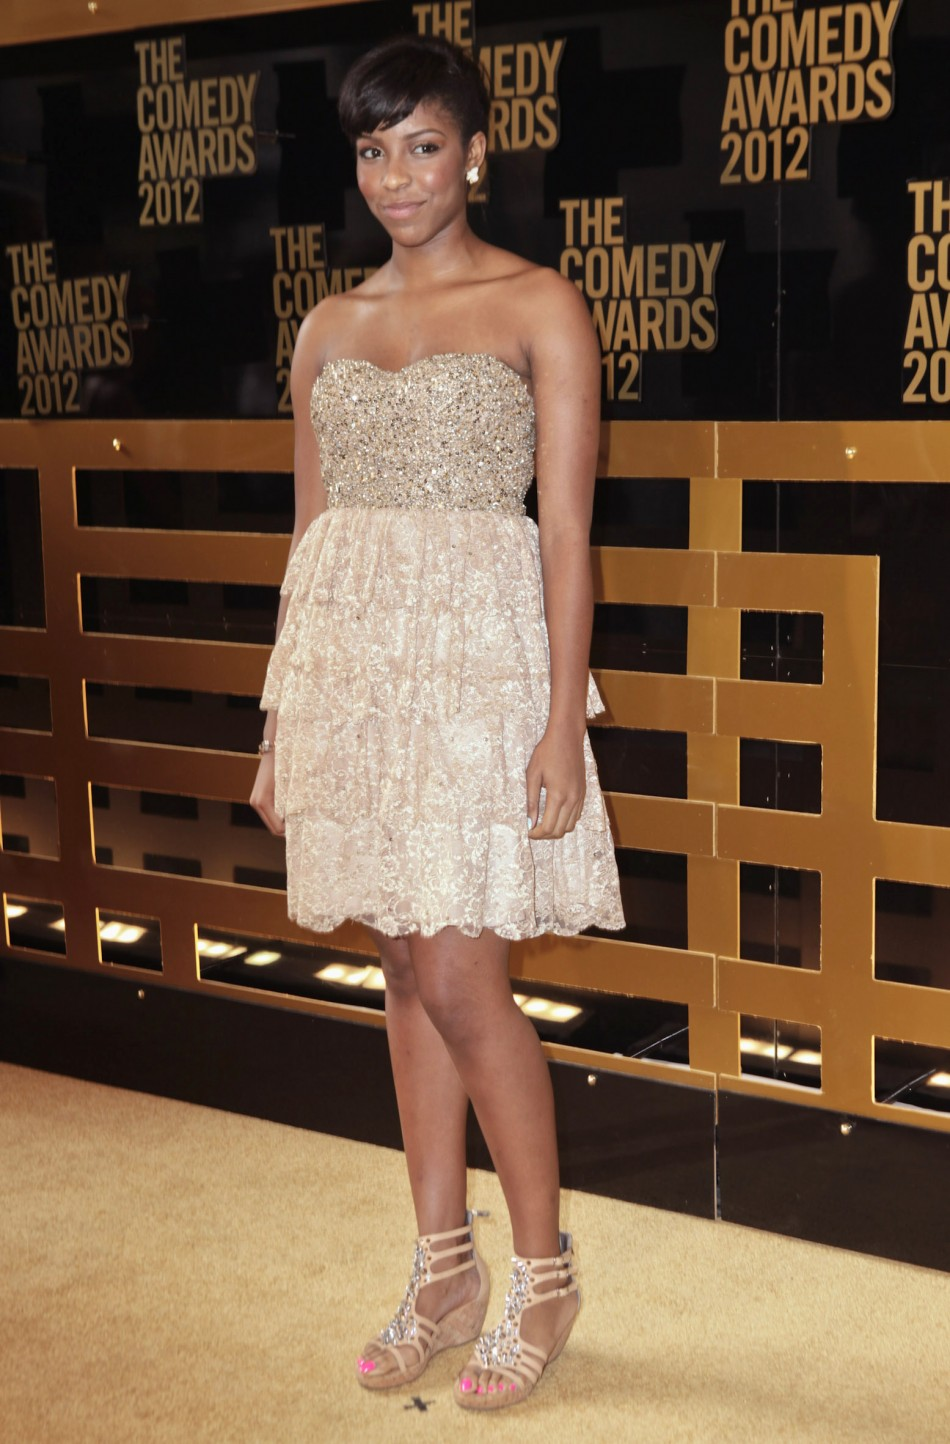 Actress Jessica Williams arrives at the Comedy Awards 2012 in New York City